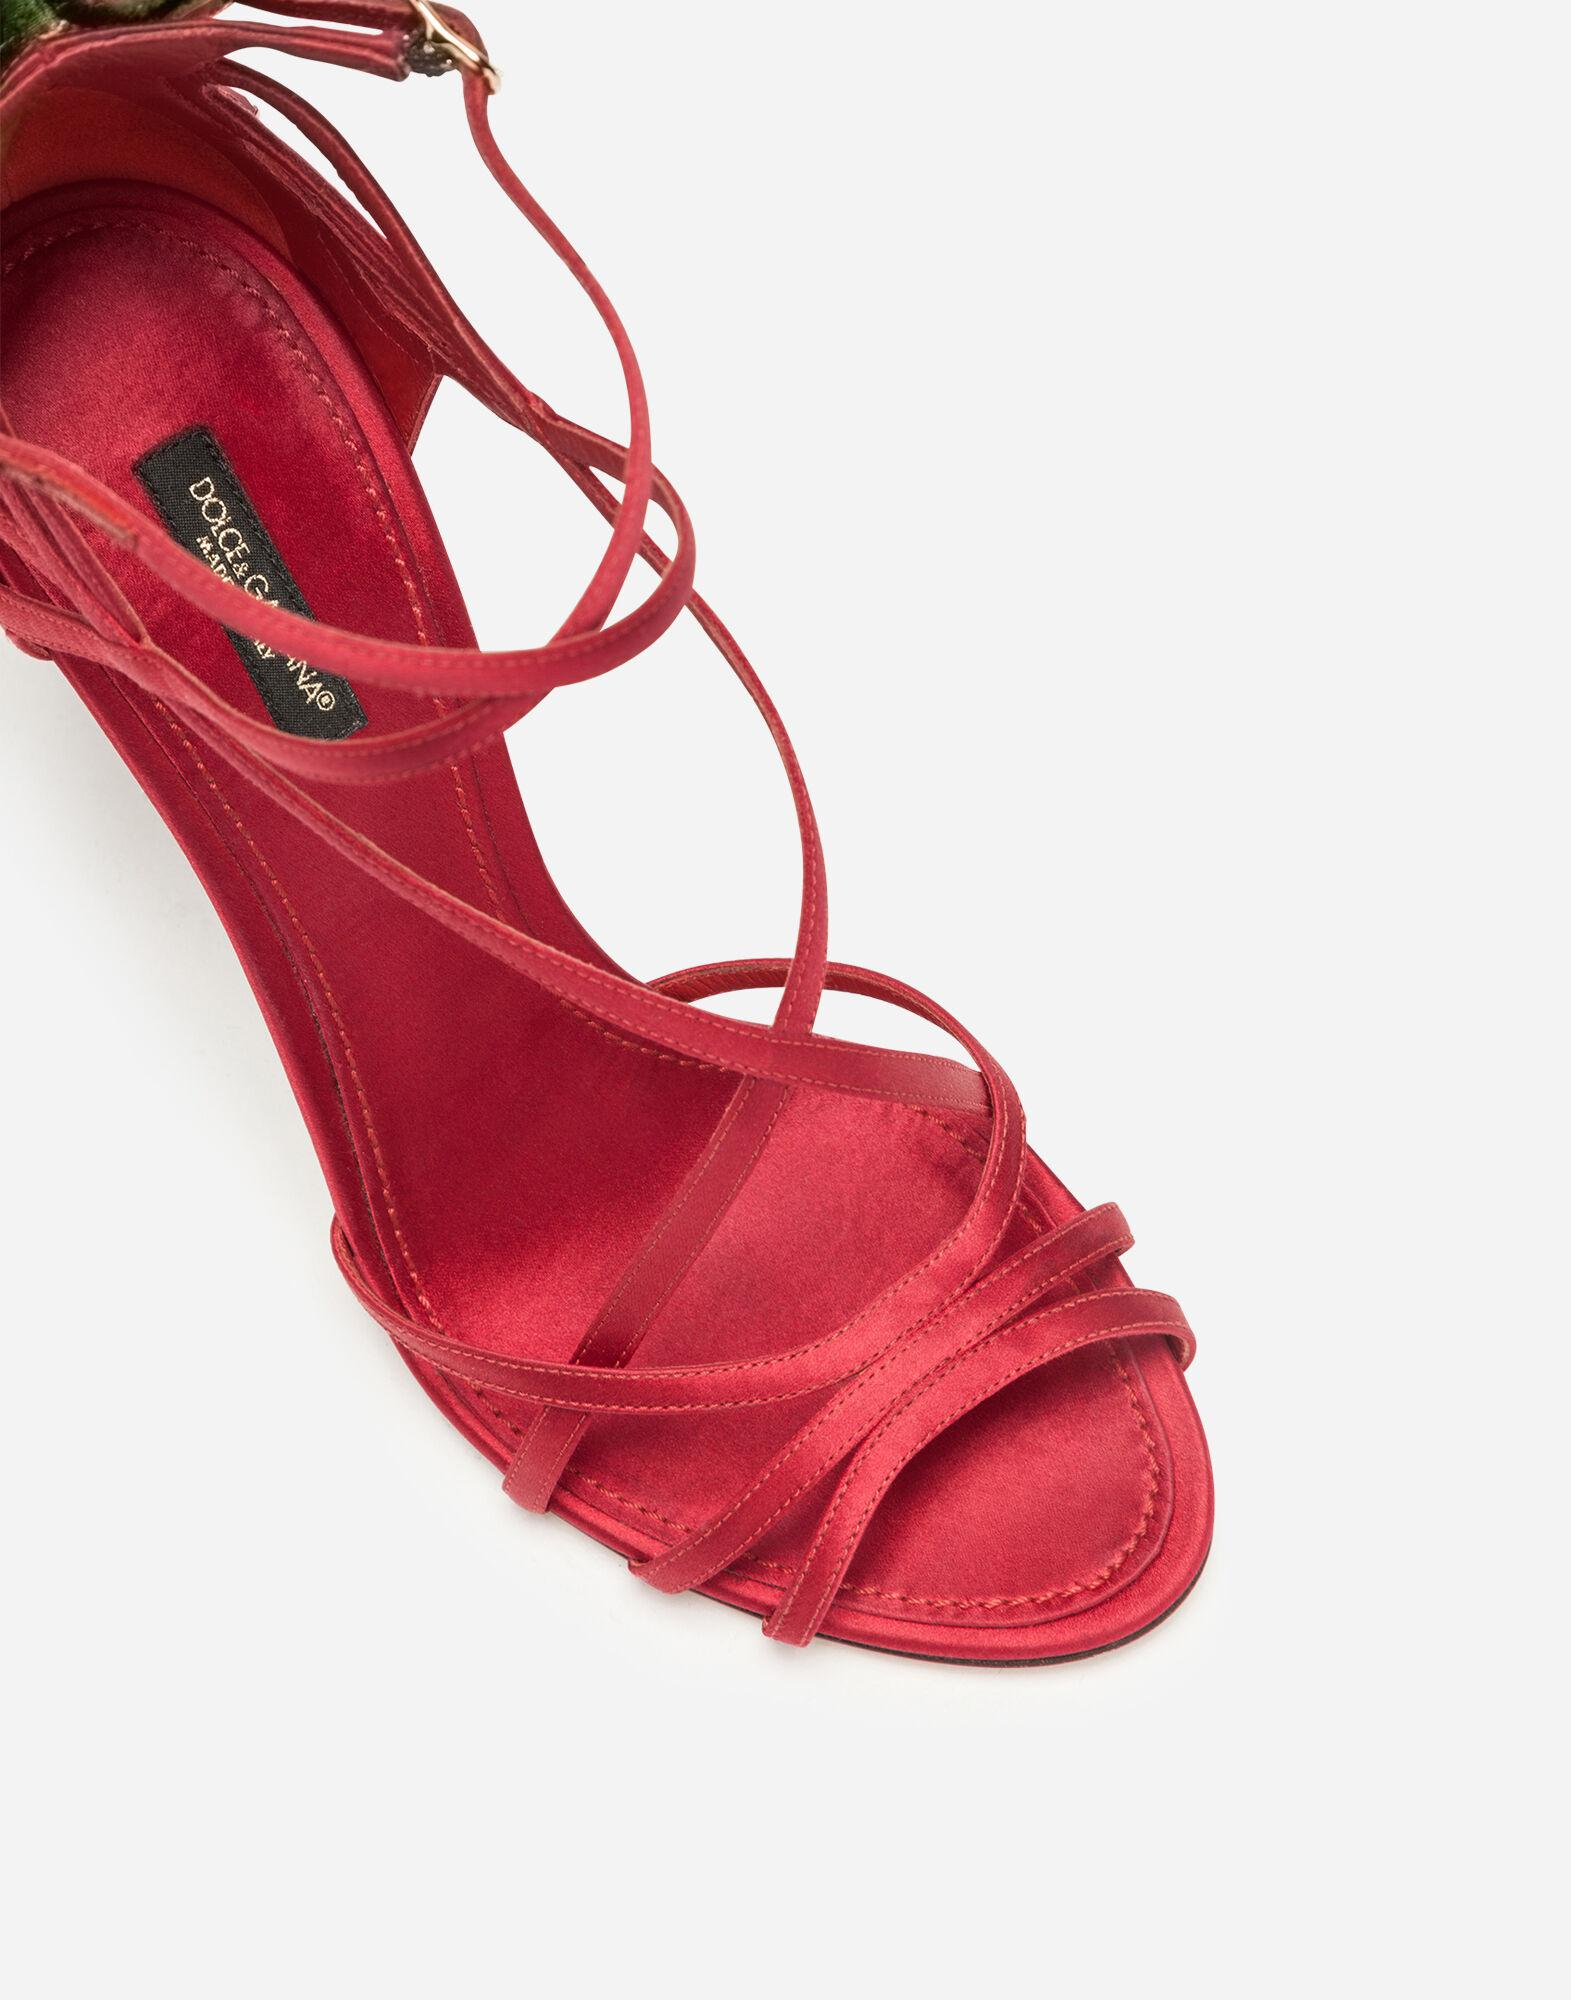 Satin sandals with embroidery